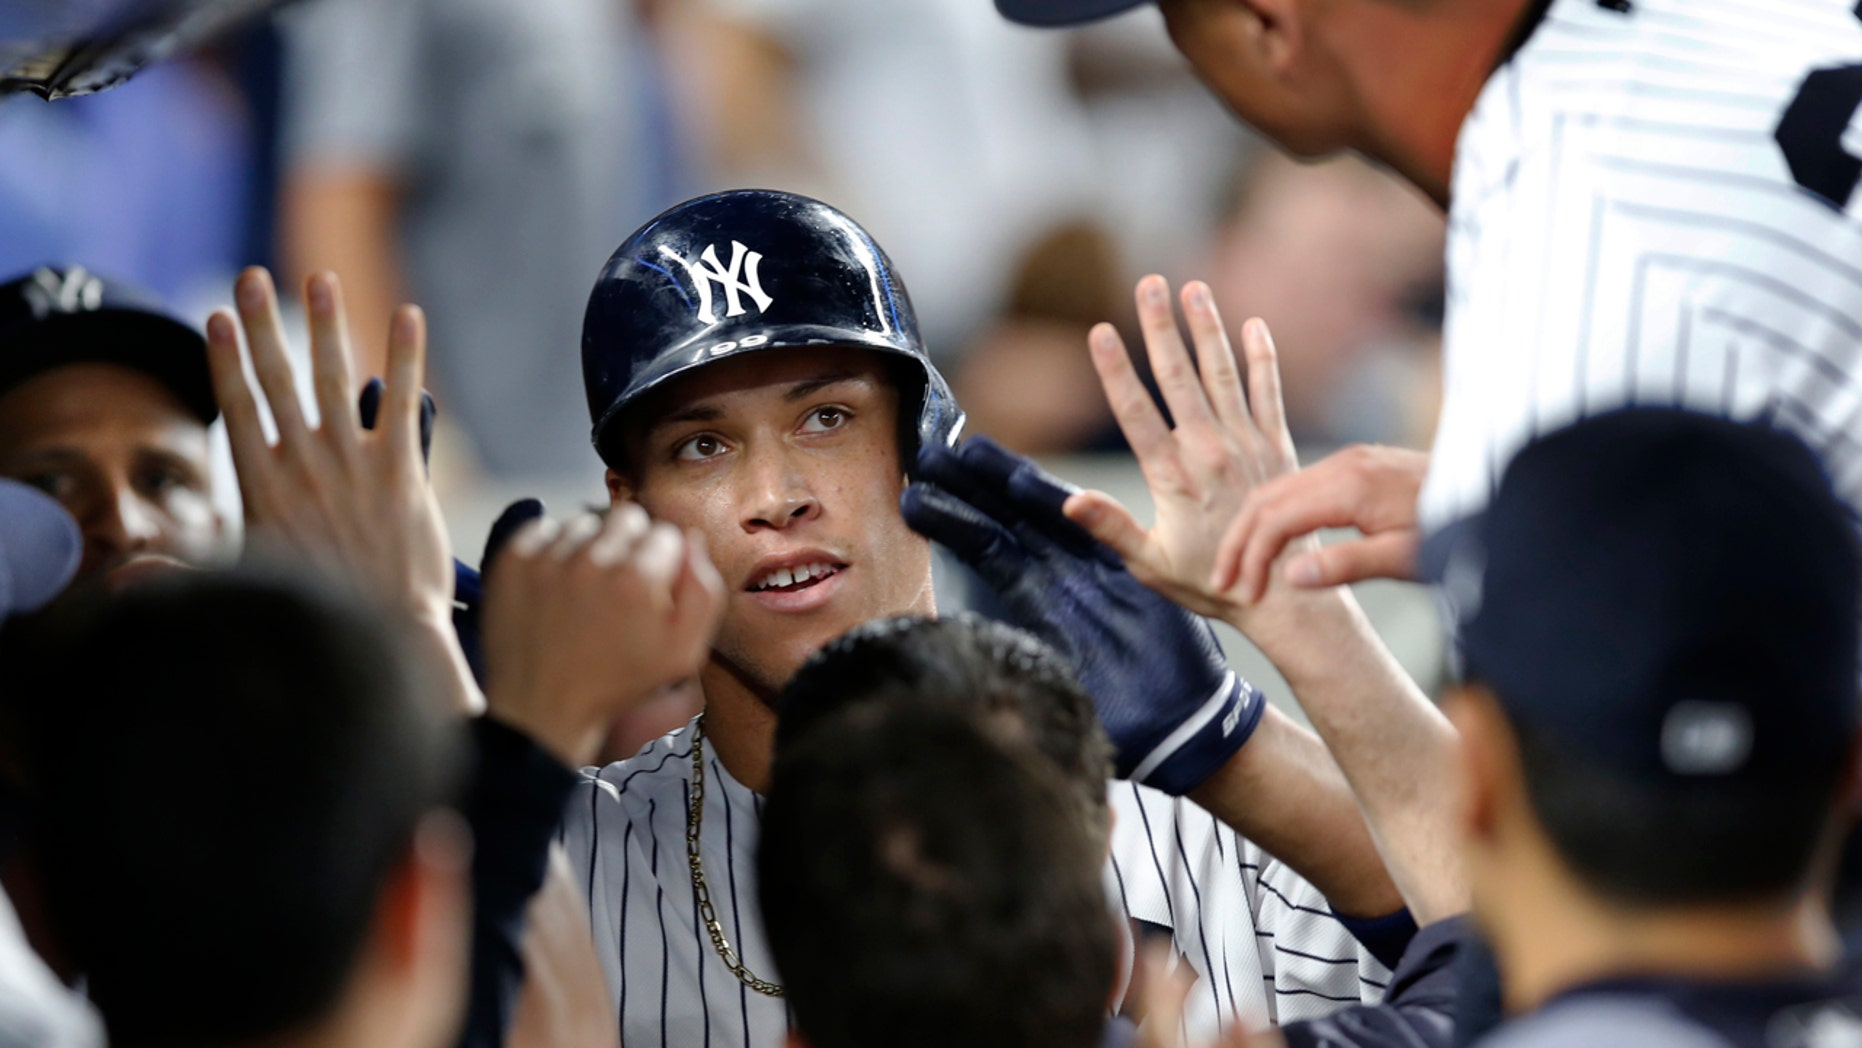 July 7: New York Yankees' Aaron Judge, center, is congratulated after his fifth-inning home run against the Milwaukee Brewers in a baseball game in in New York.